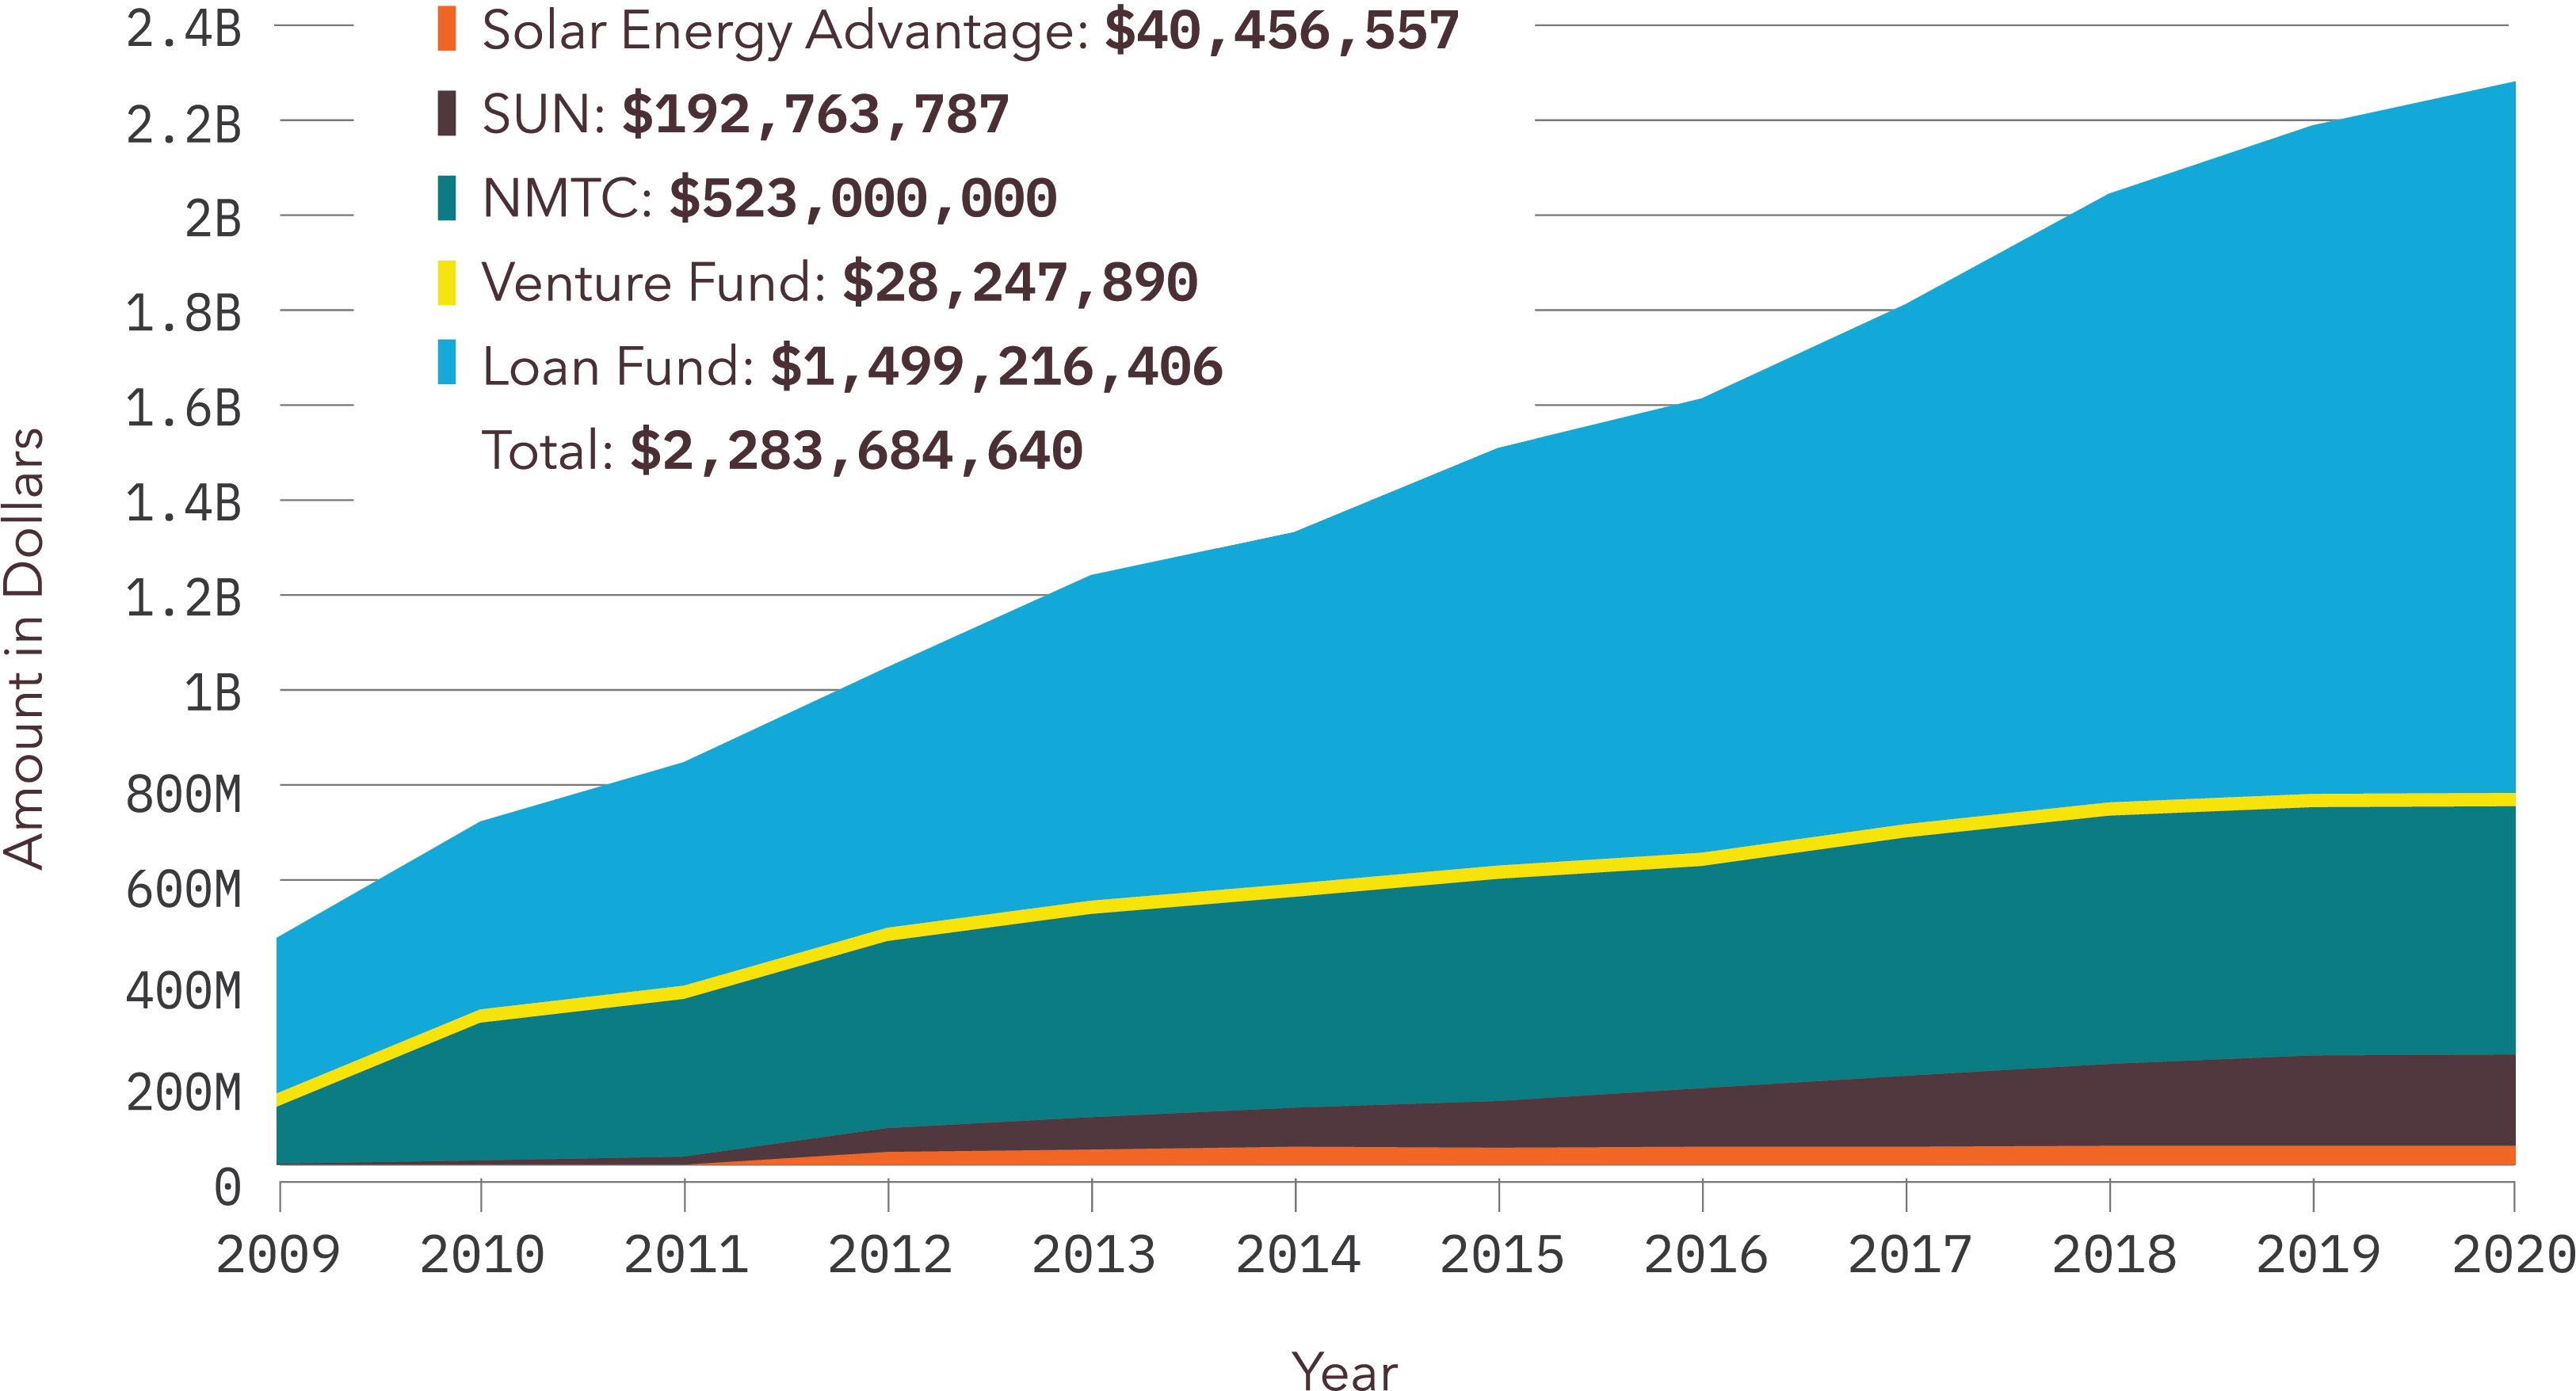 Growth chart showing Bluehub cumulative dollars invested from 2009 to 2020.